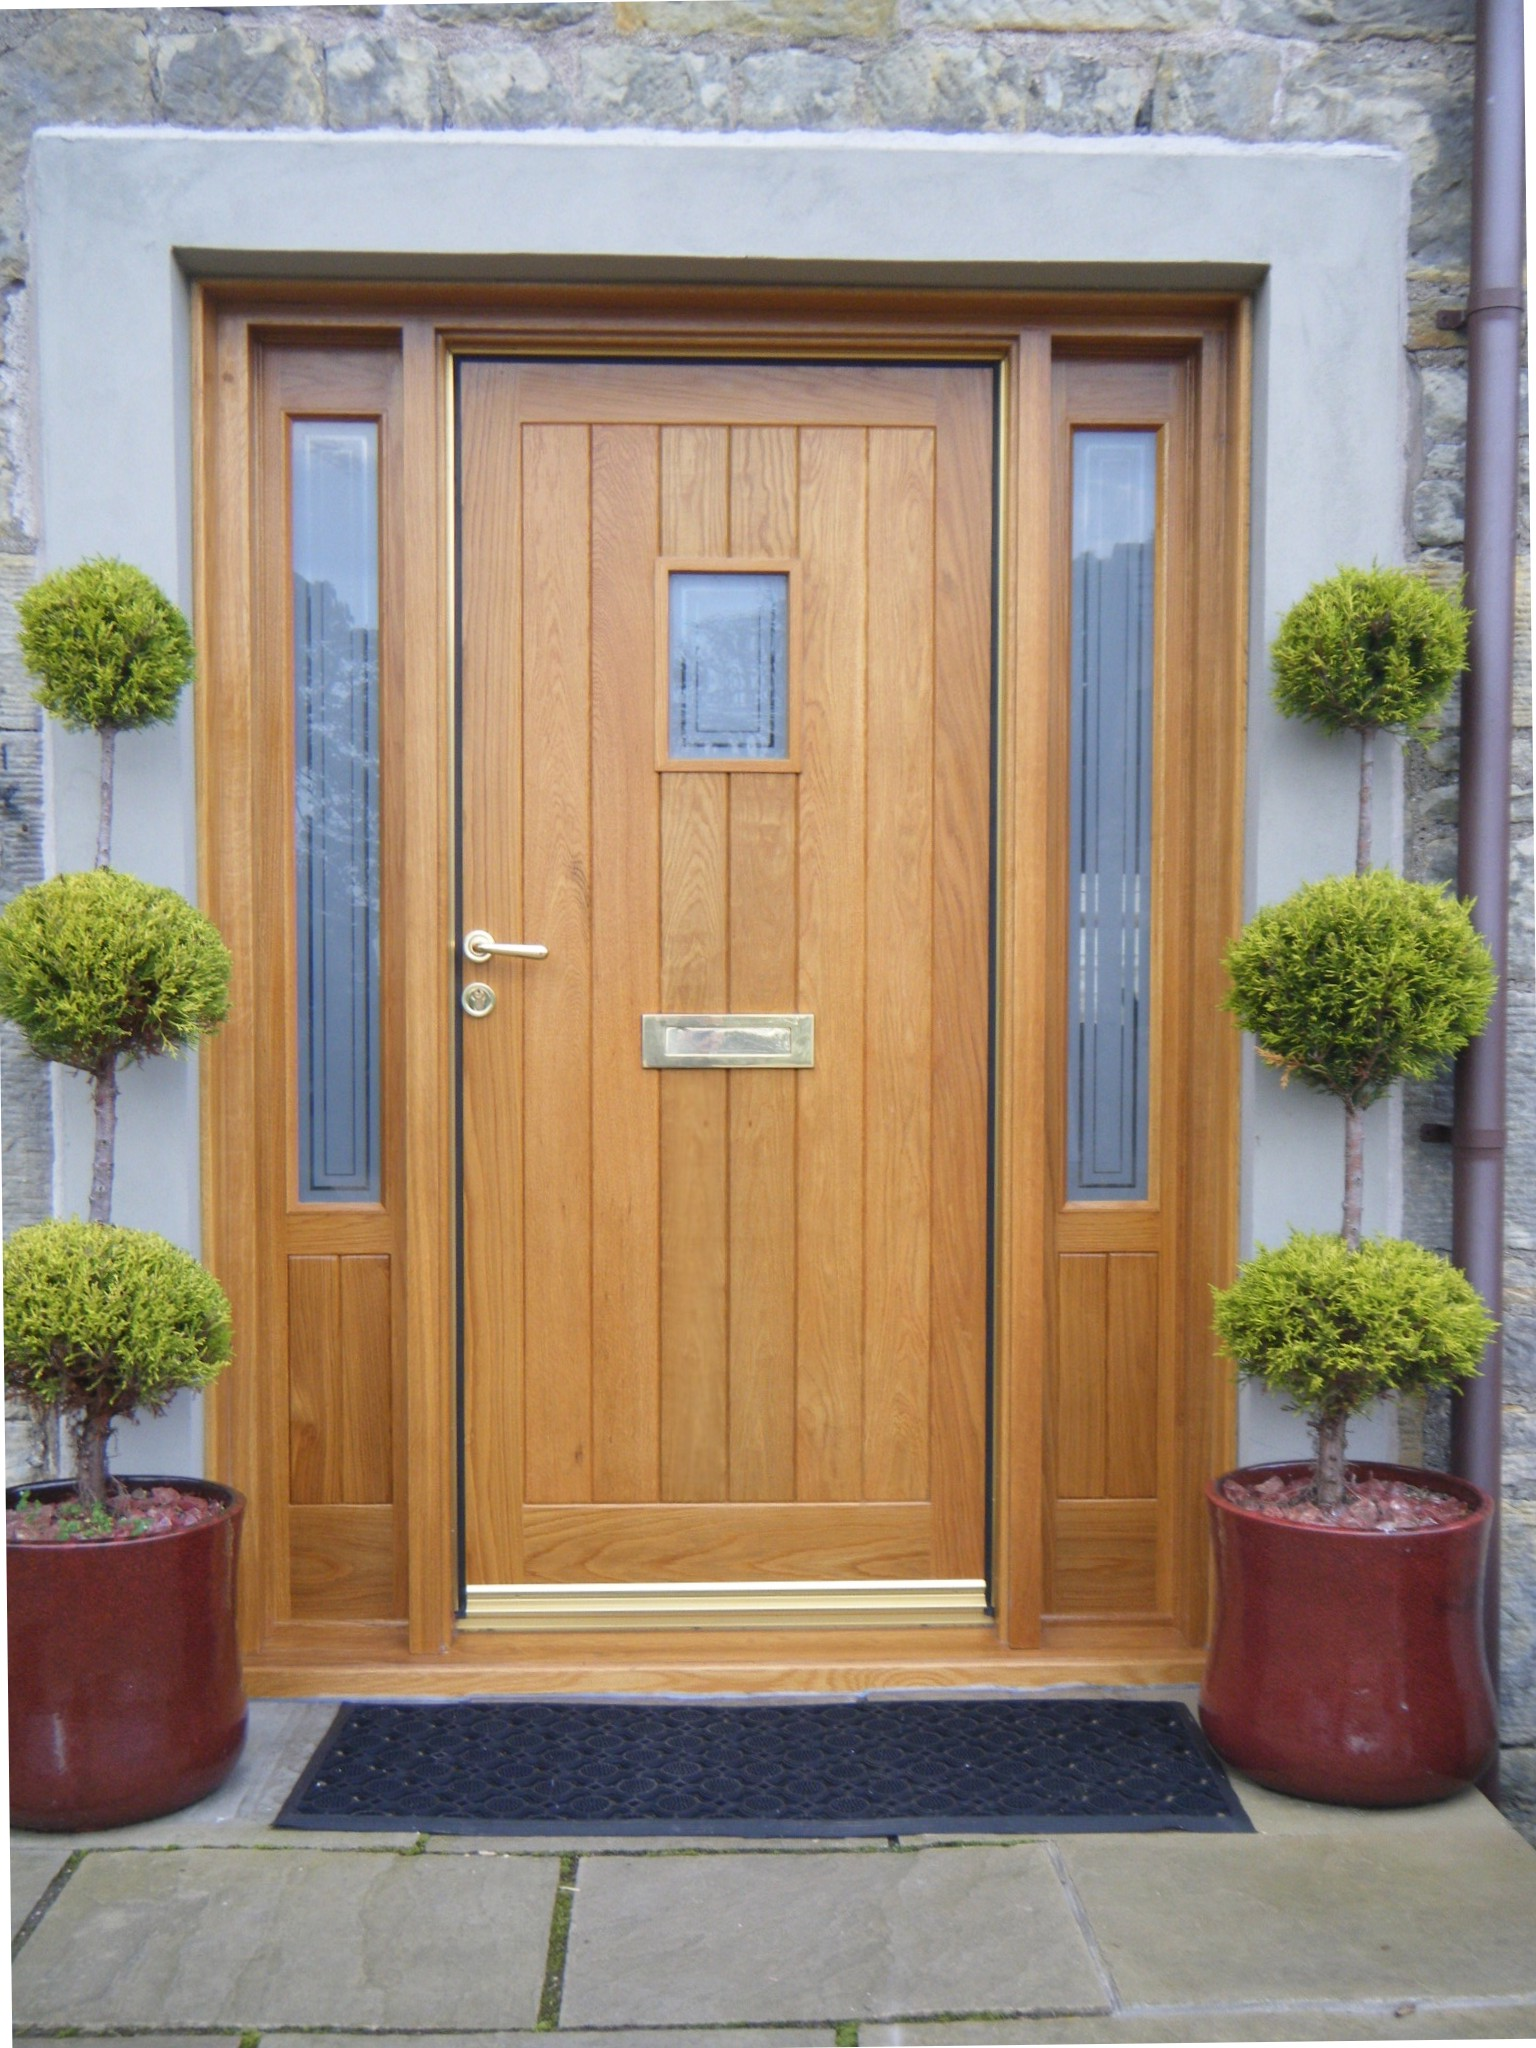 Doors external london hardwood external door hardwooddoors for Wood door design 2016